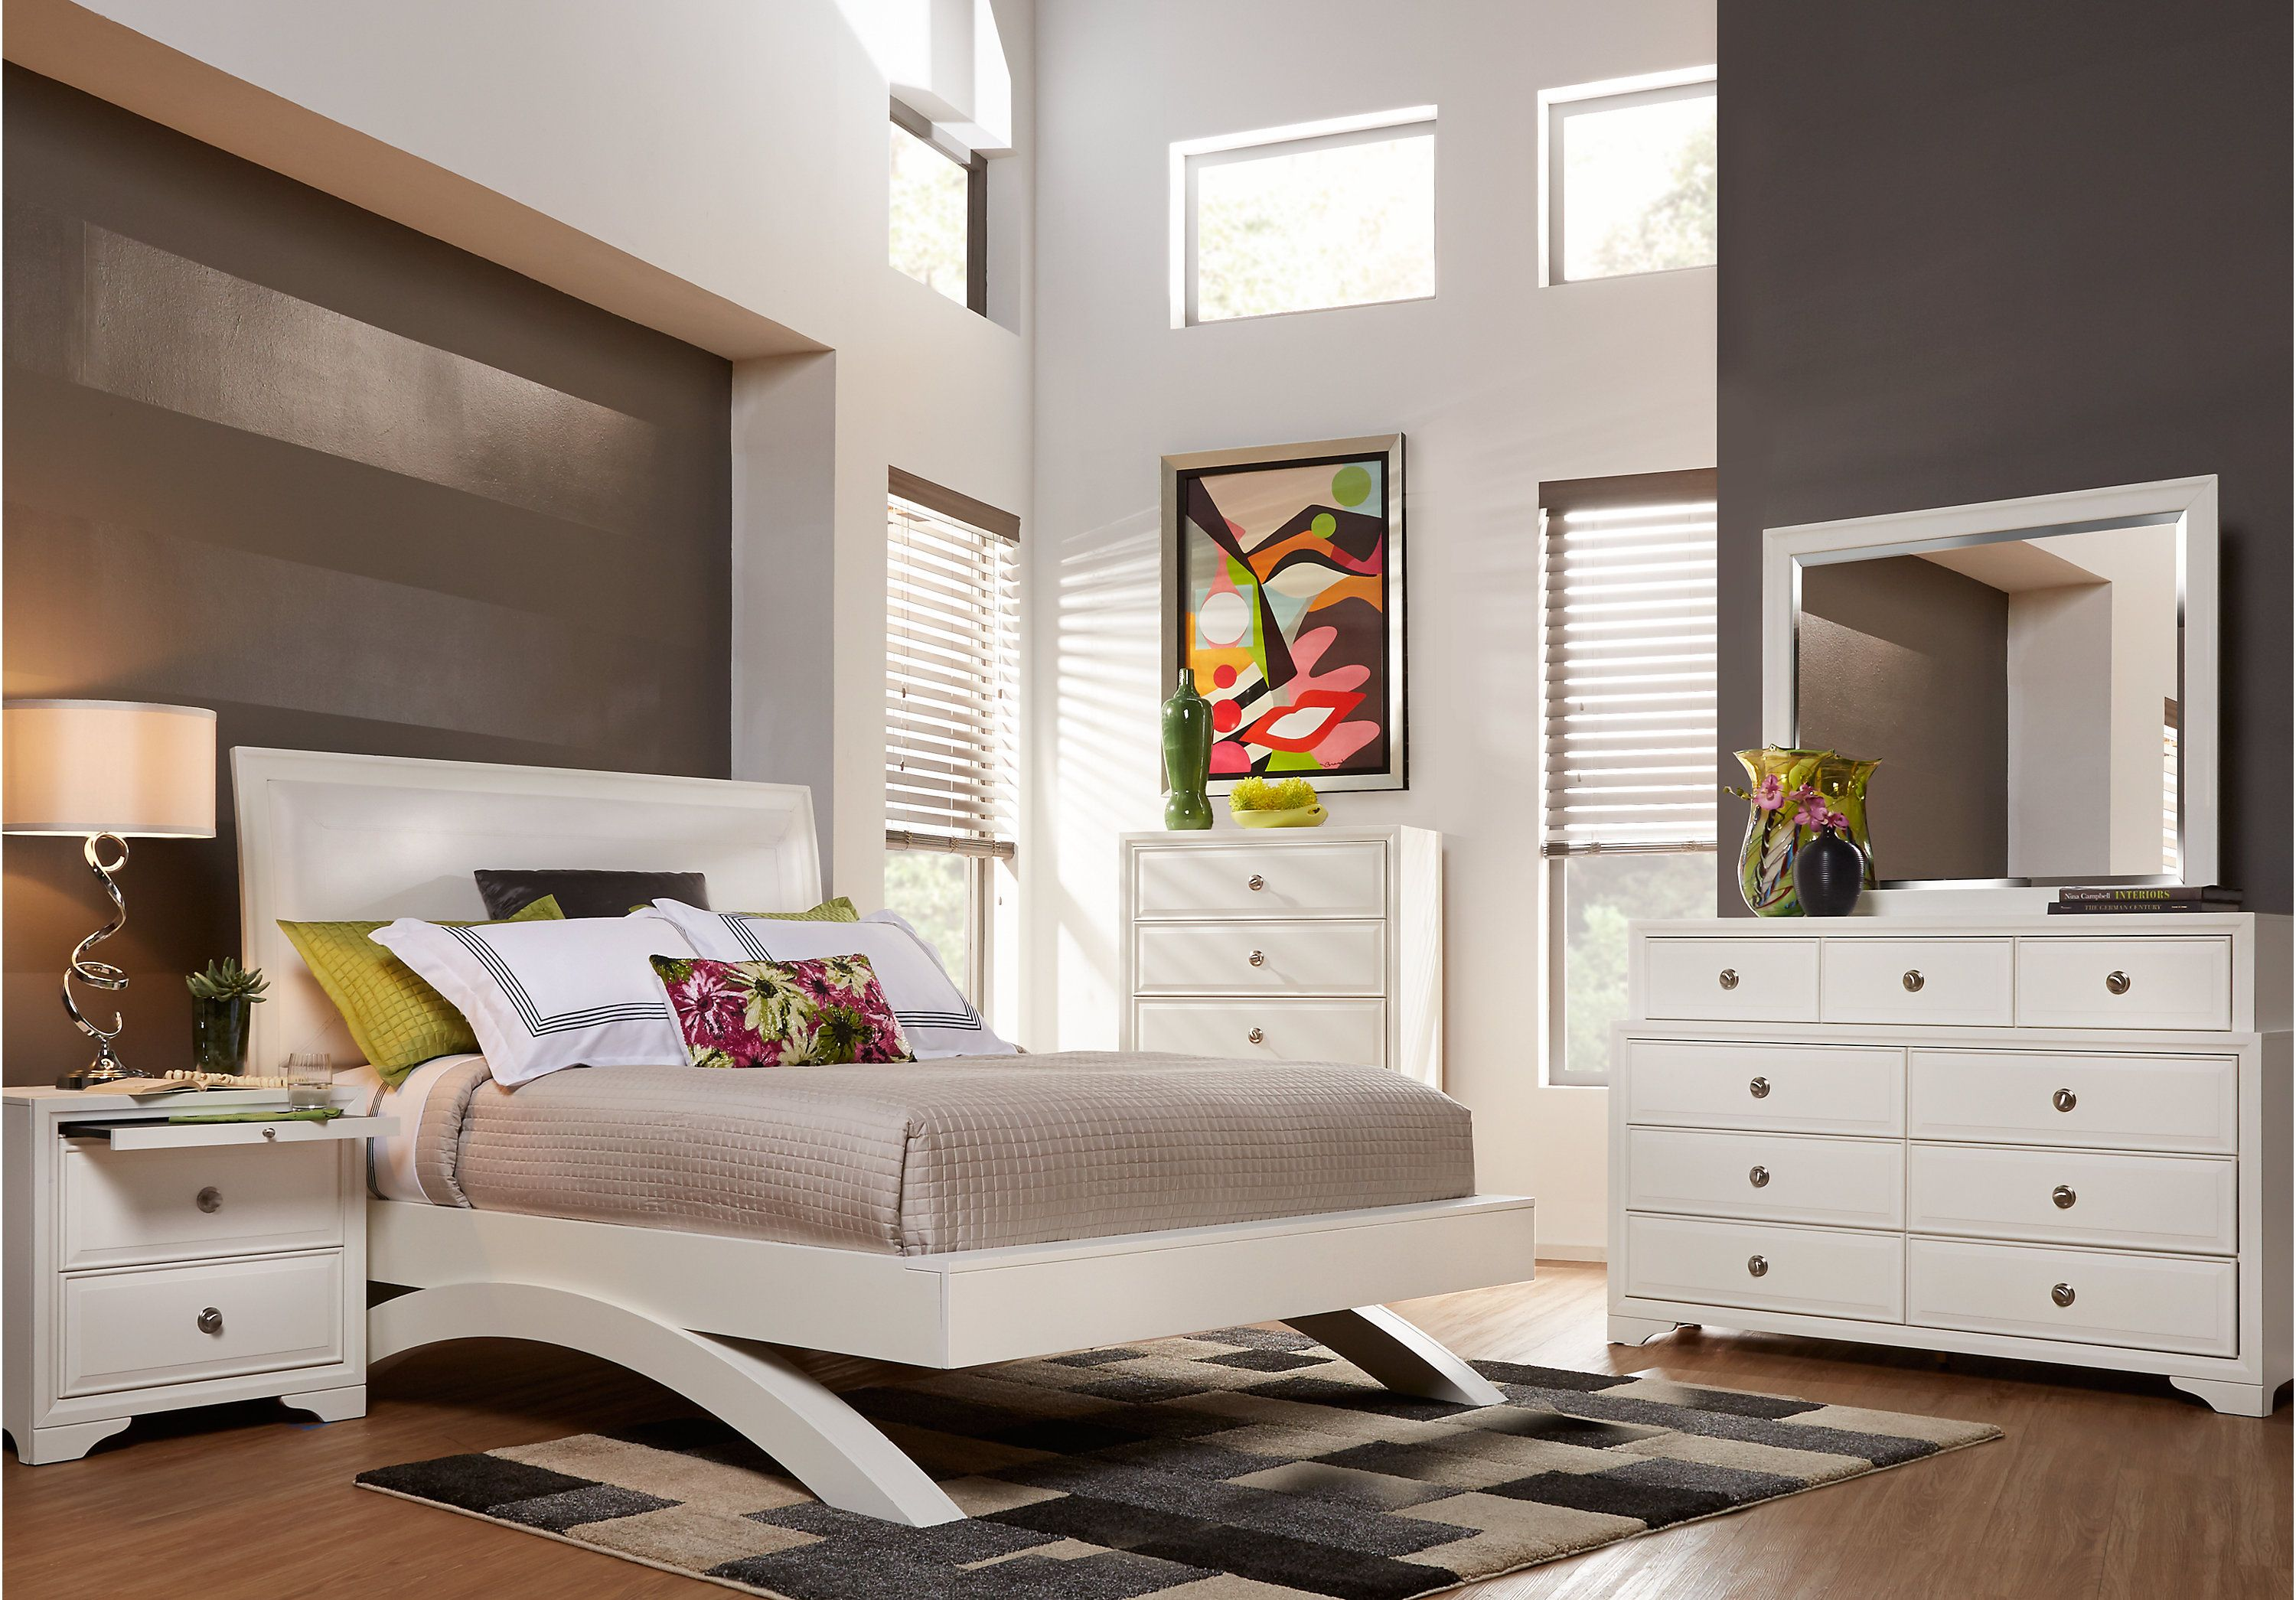 bed b products richmond aspenhome item sets platform bedroom headboard number sleigh size queen storage with